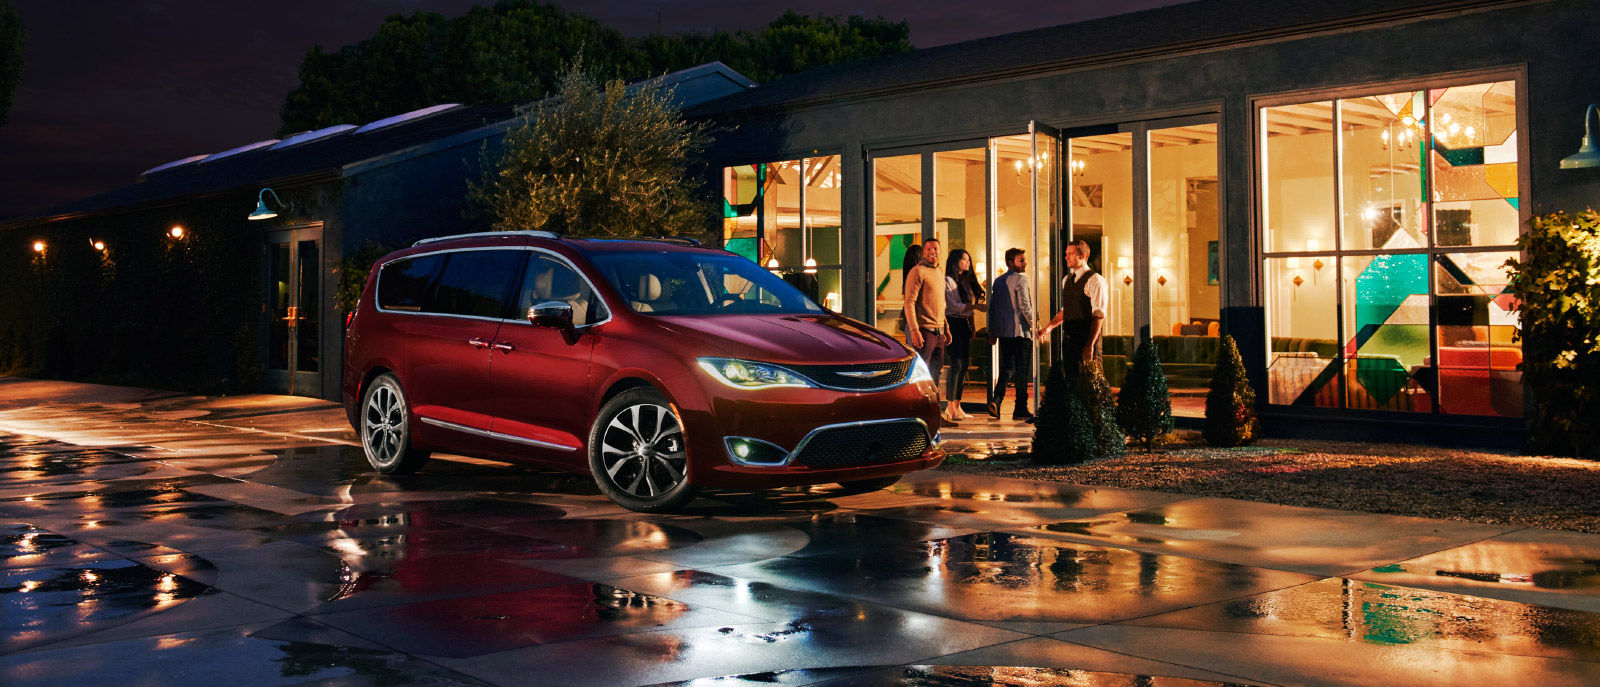 2017 Red Pacifica Exterior Friends